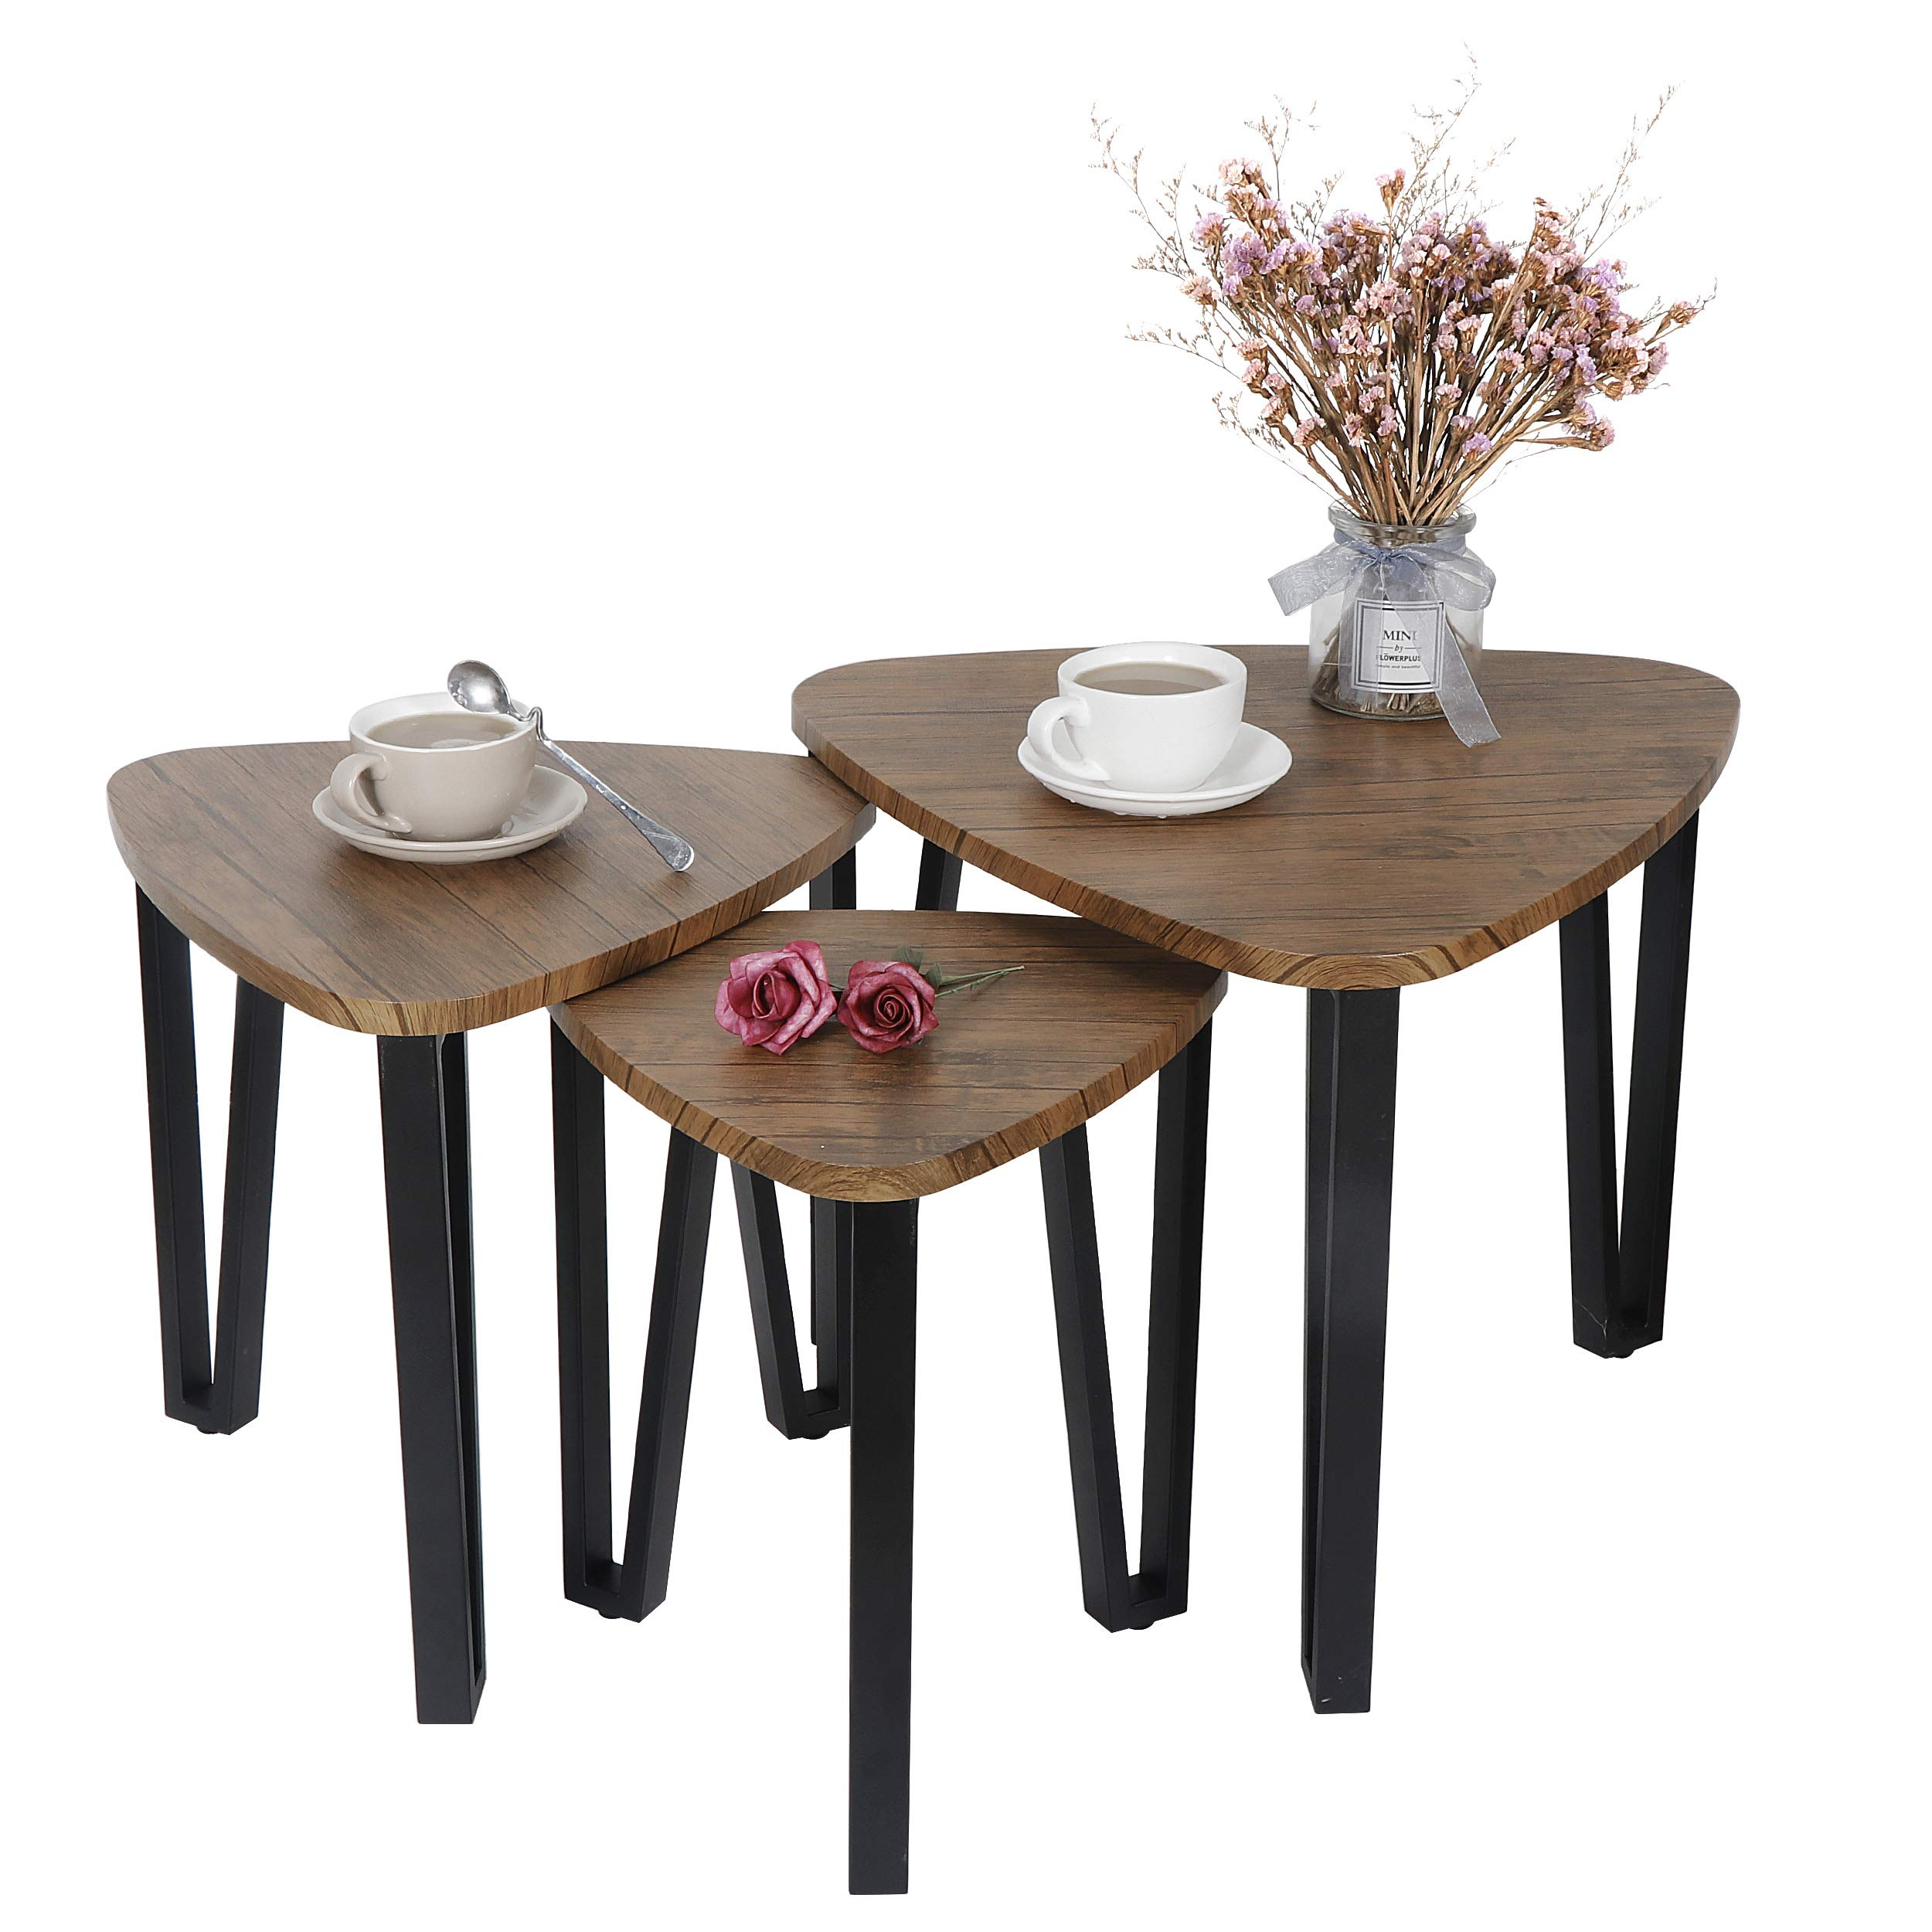 F2C Set of 3 Industrial Nesting Vintage End Coffee Tables - Stacking End Side Table Nightstands - Metal Framed Wood Look Accent Furniture for Home Office Living Room Bedroom by F2C